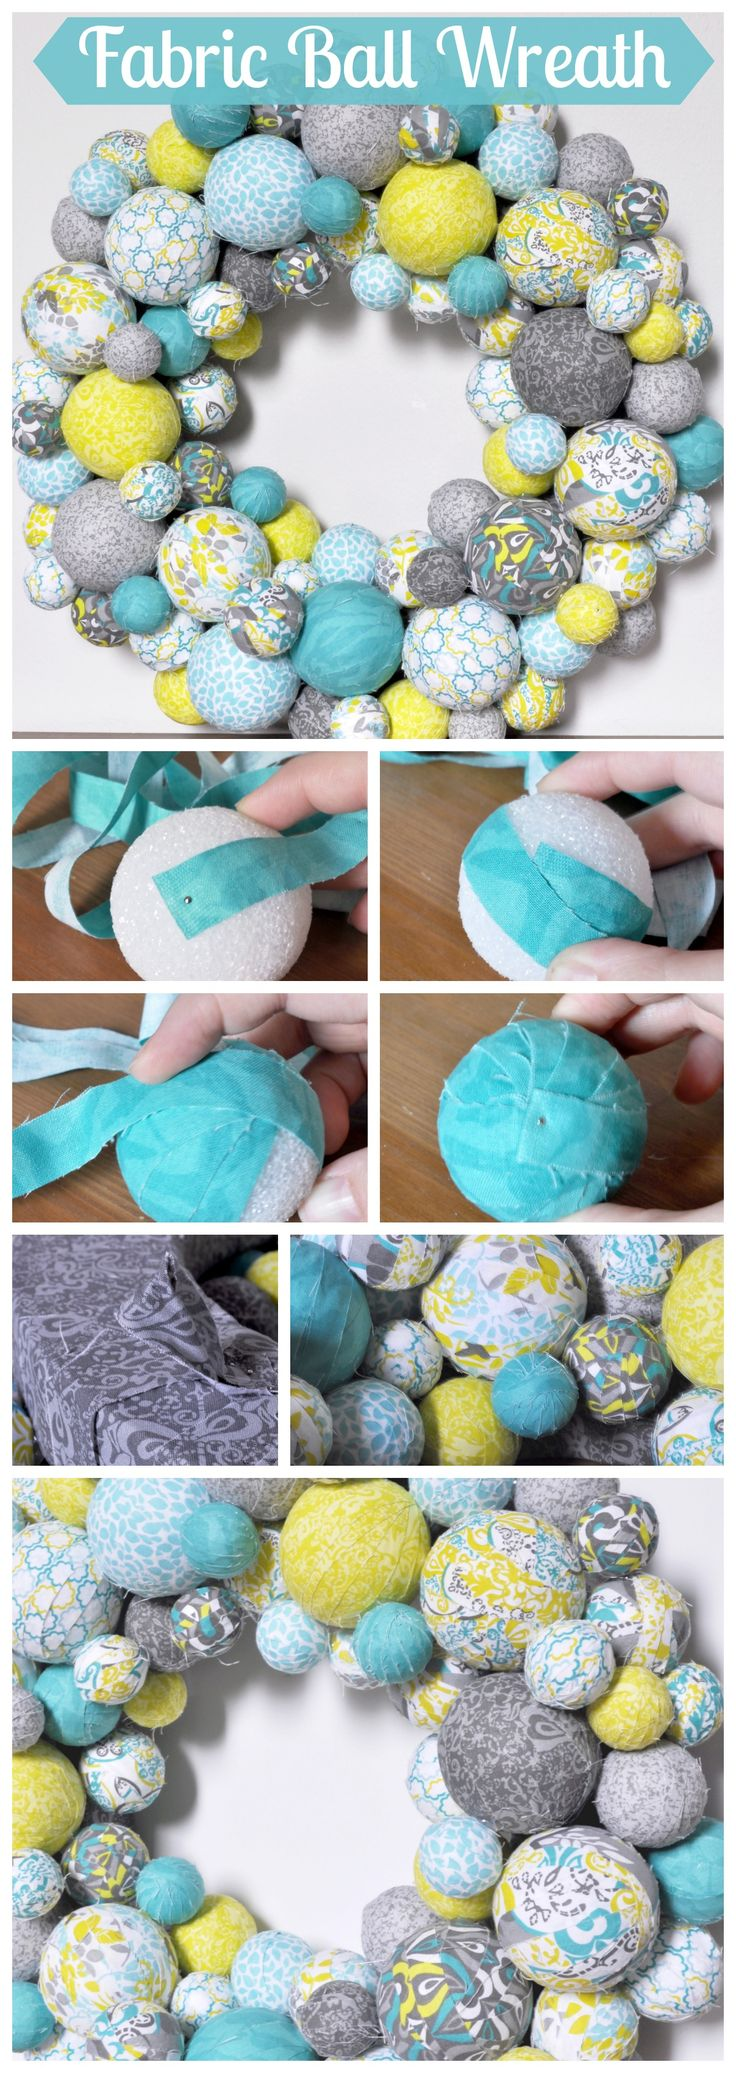 Fabric Ball Wreath - I am so excited about my spring wreath in aqua, lemongrass green, and gray patterns! It looks fabulous in our house and...